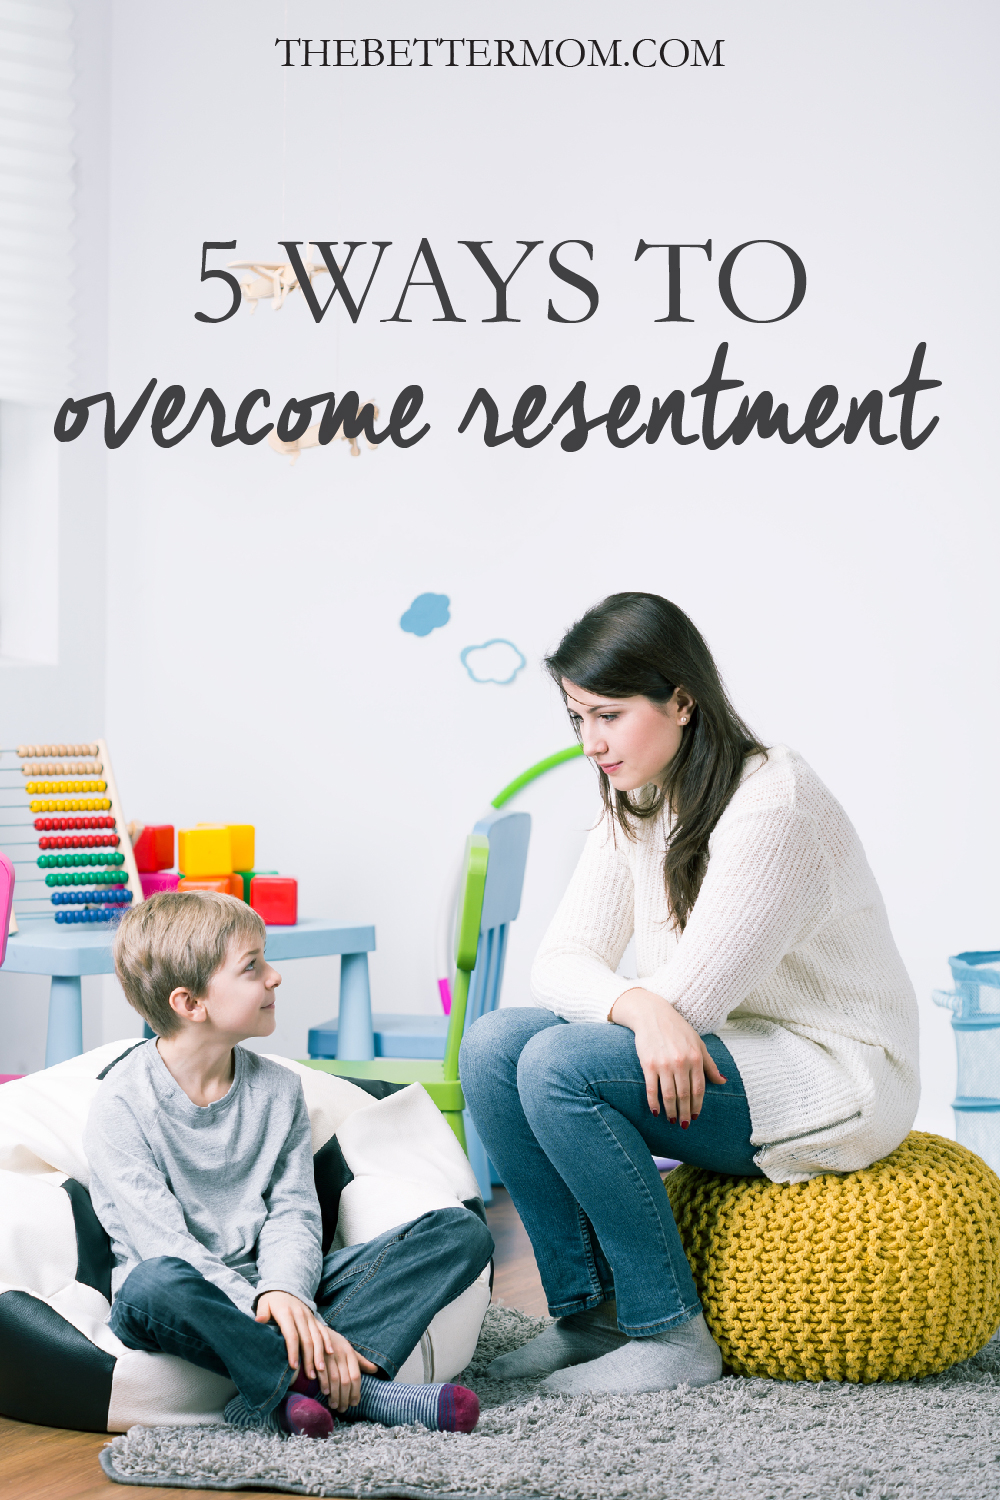 Are you loving on your family through a difficult season? Even when we want to serve and care for those we love, we can be at risk of burning out and bubbling with resentment. Take heart and try these ideas to remain steadfast...